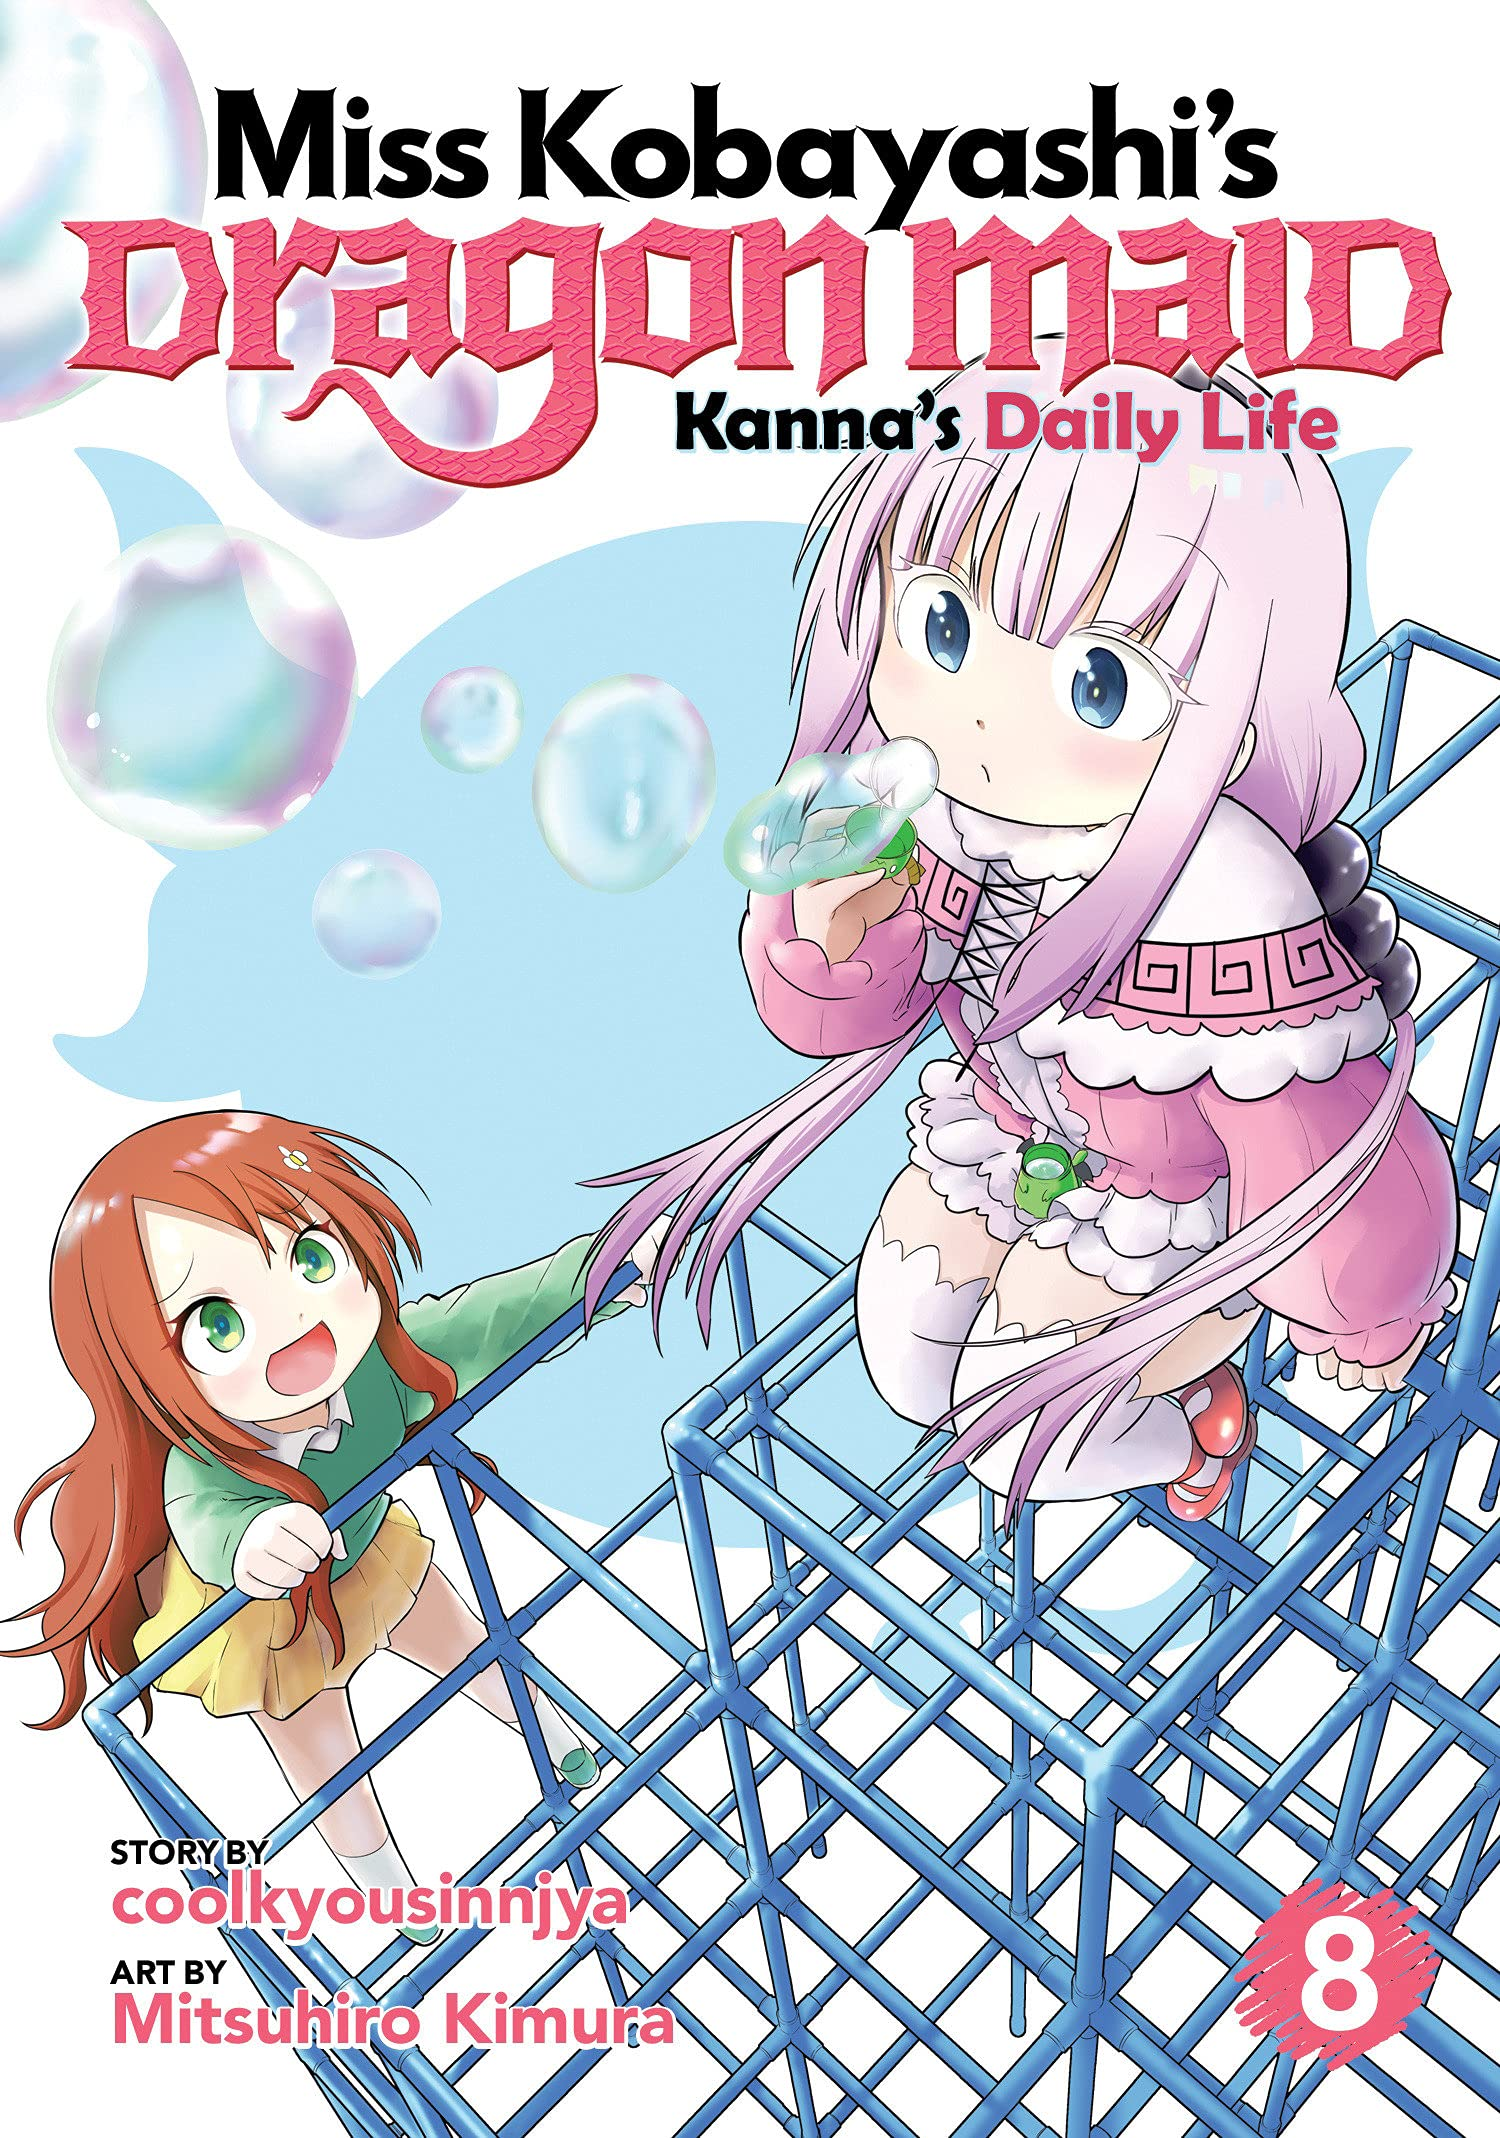 Featured image for Thoughts on Miss Kobayashi's Dragon Maid: Kanna's Daily Life Volume 8